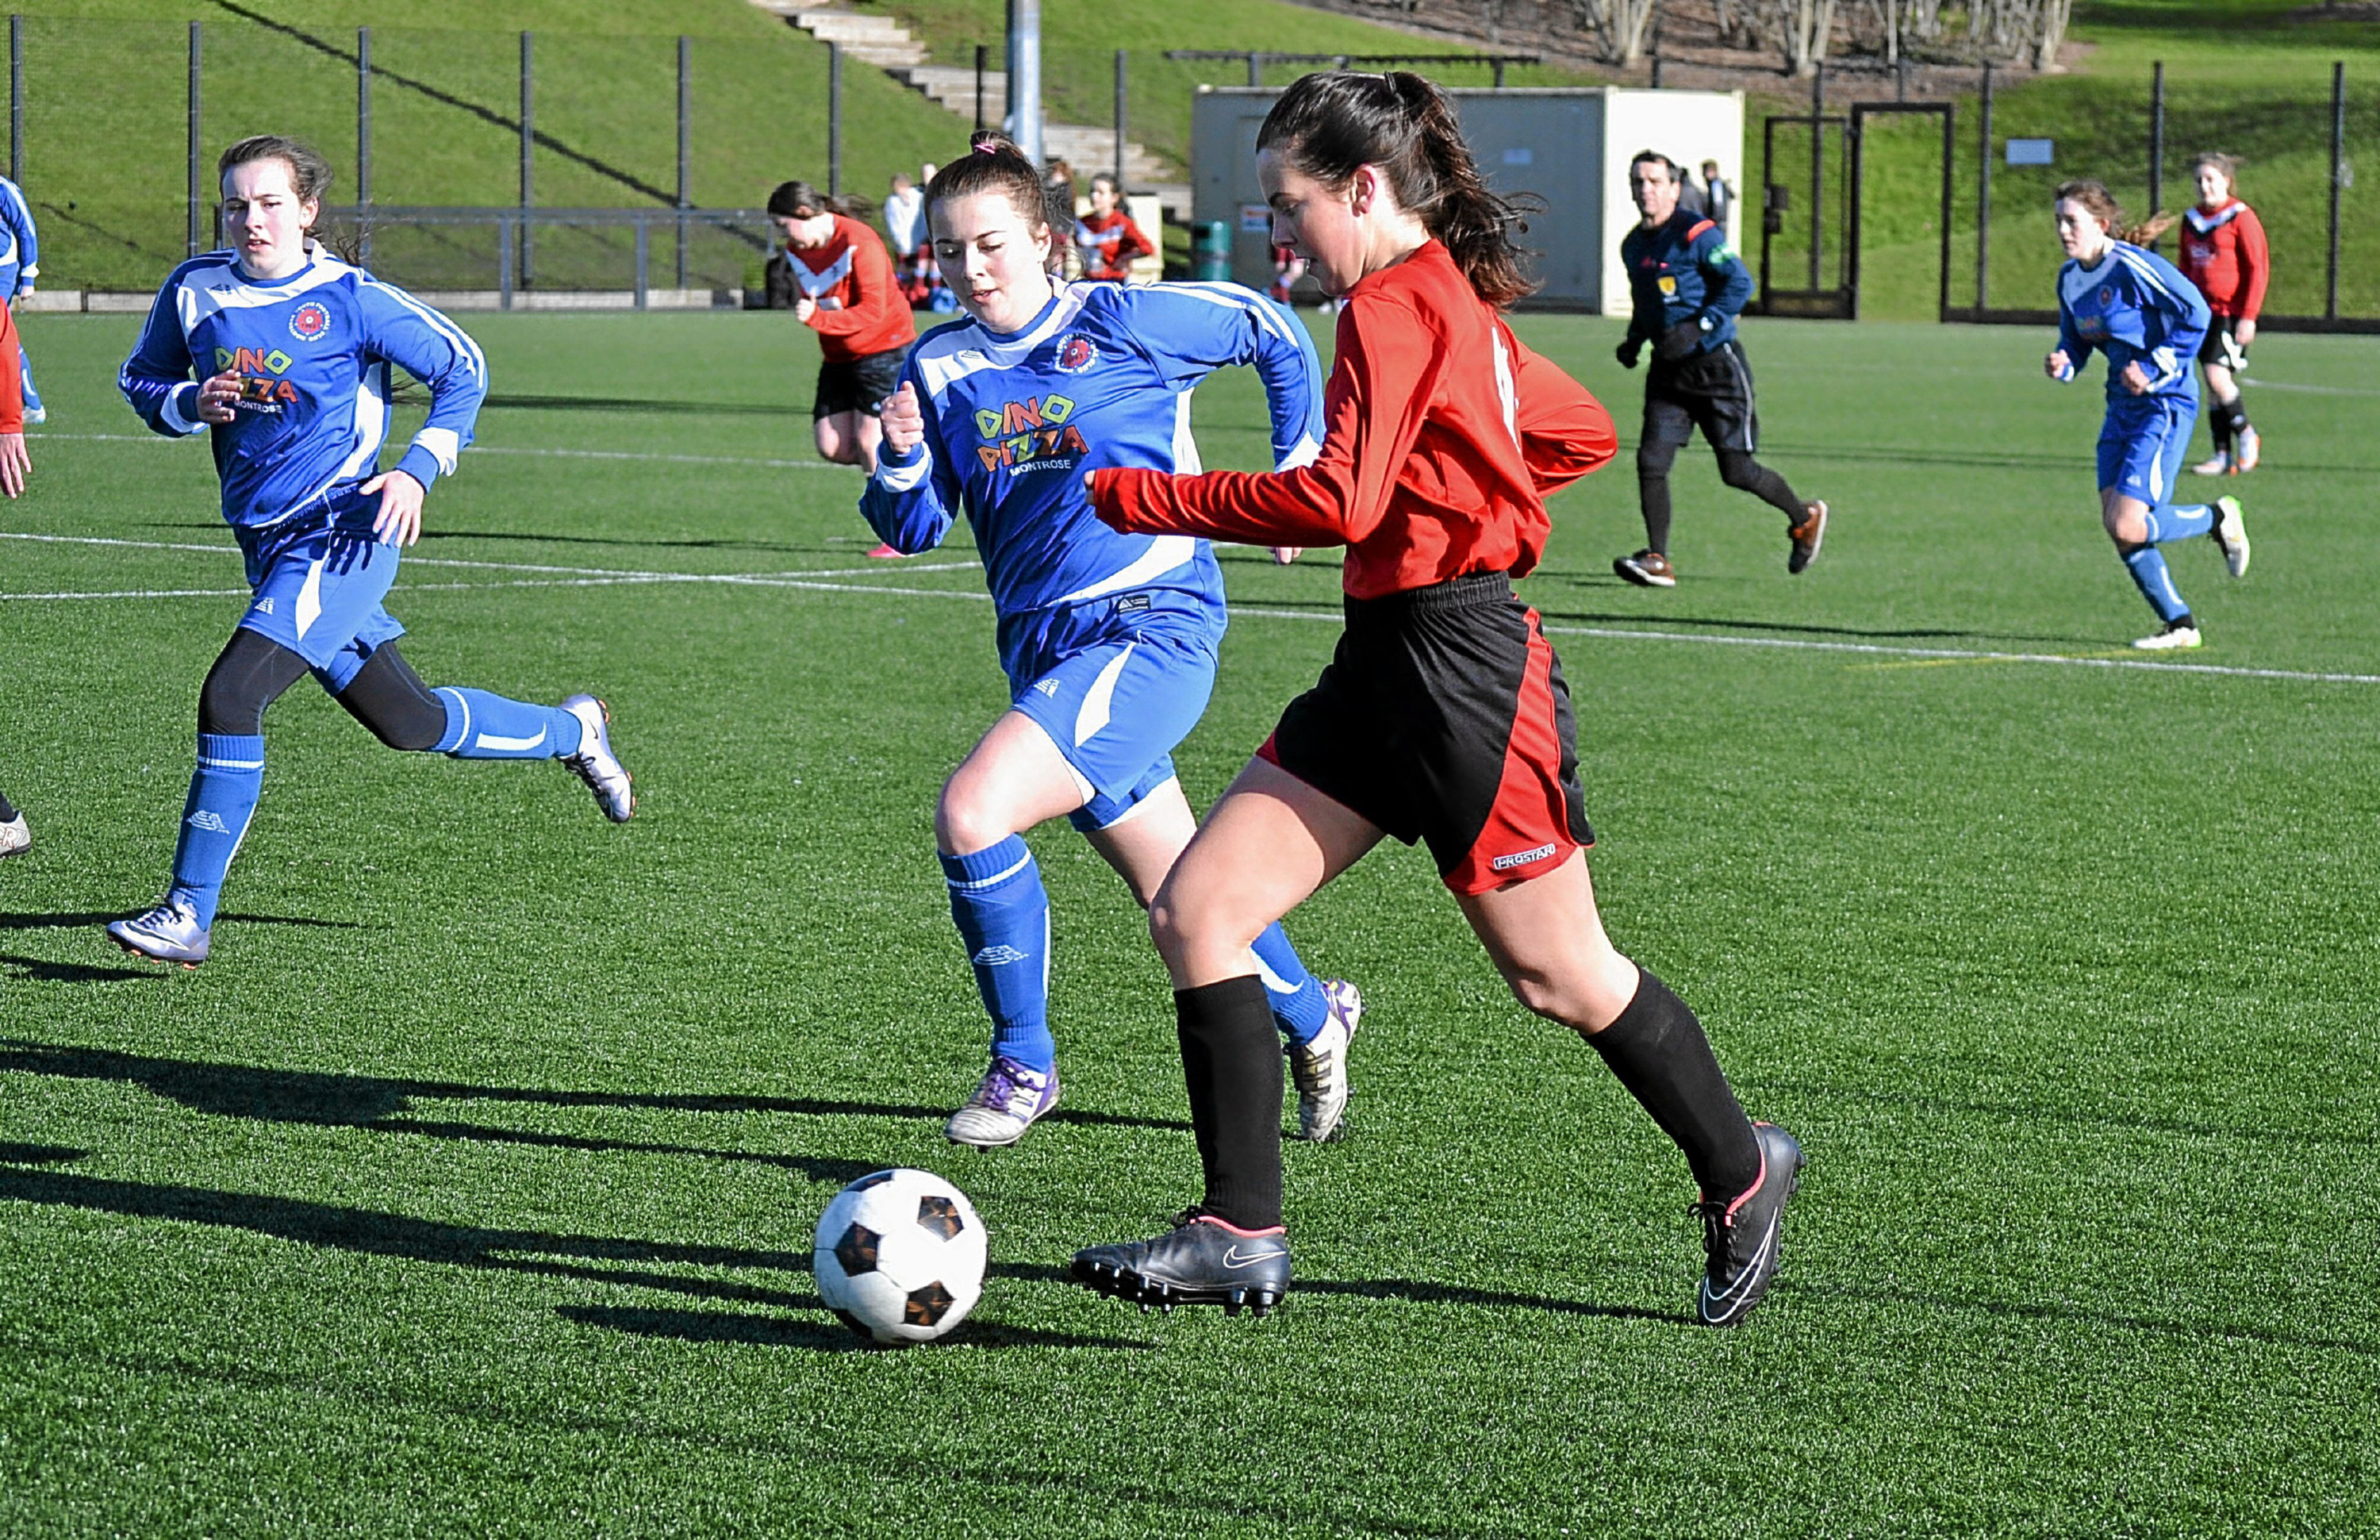 Clubs like Monifieth develop young players